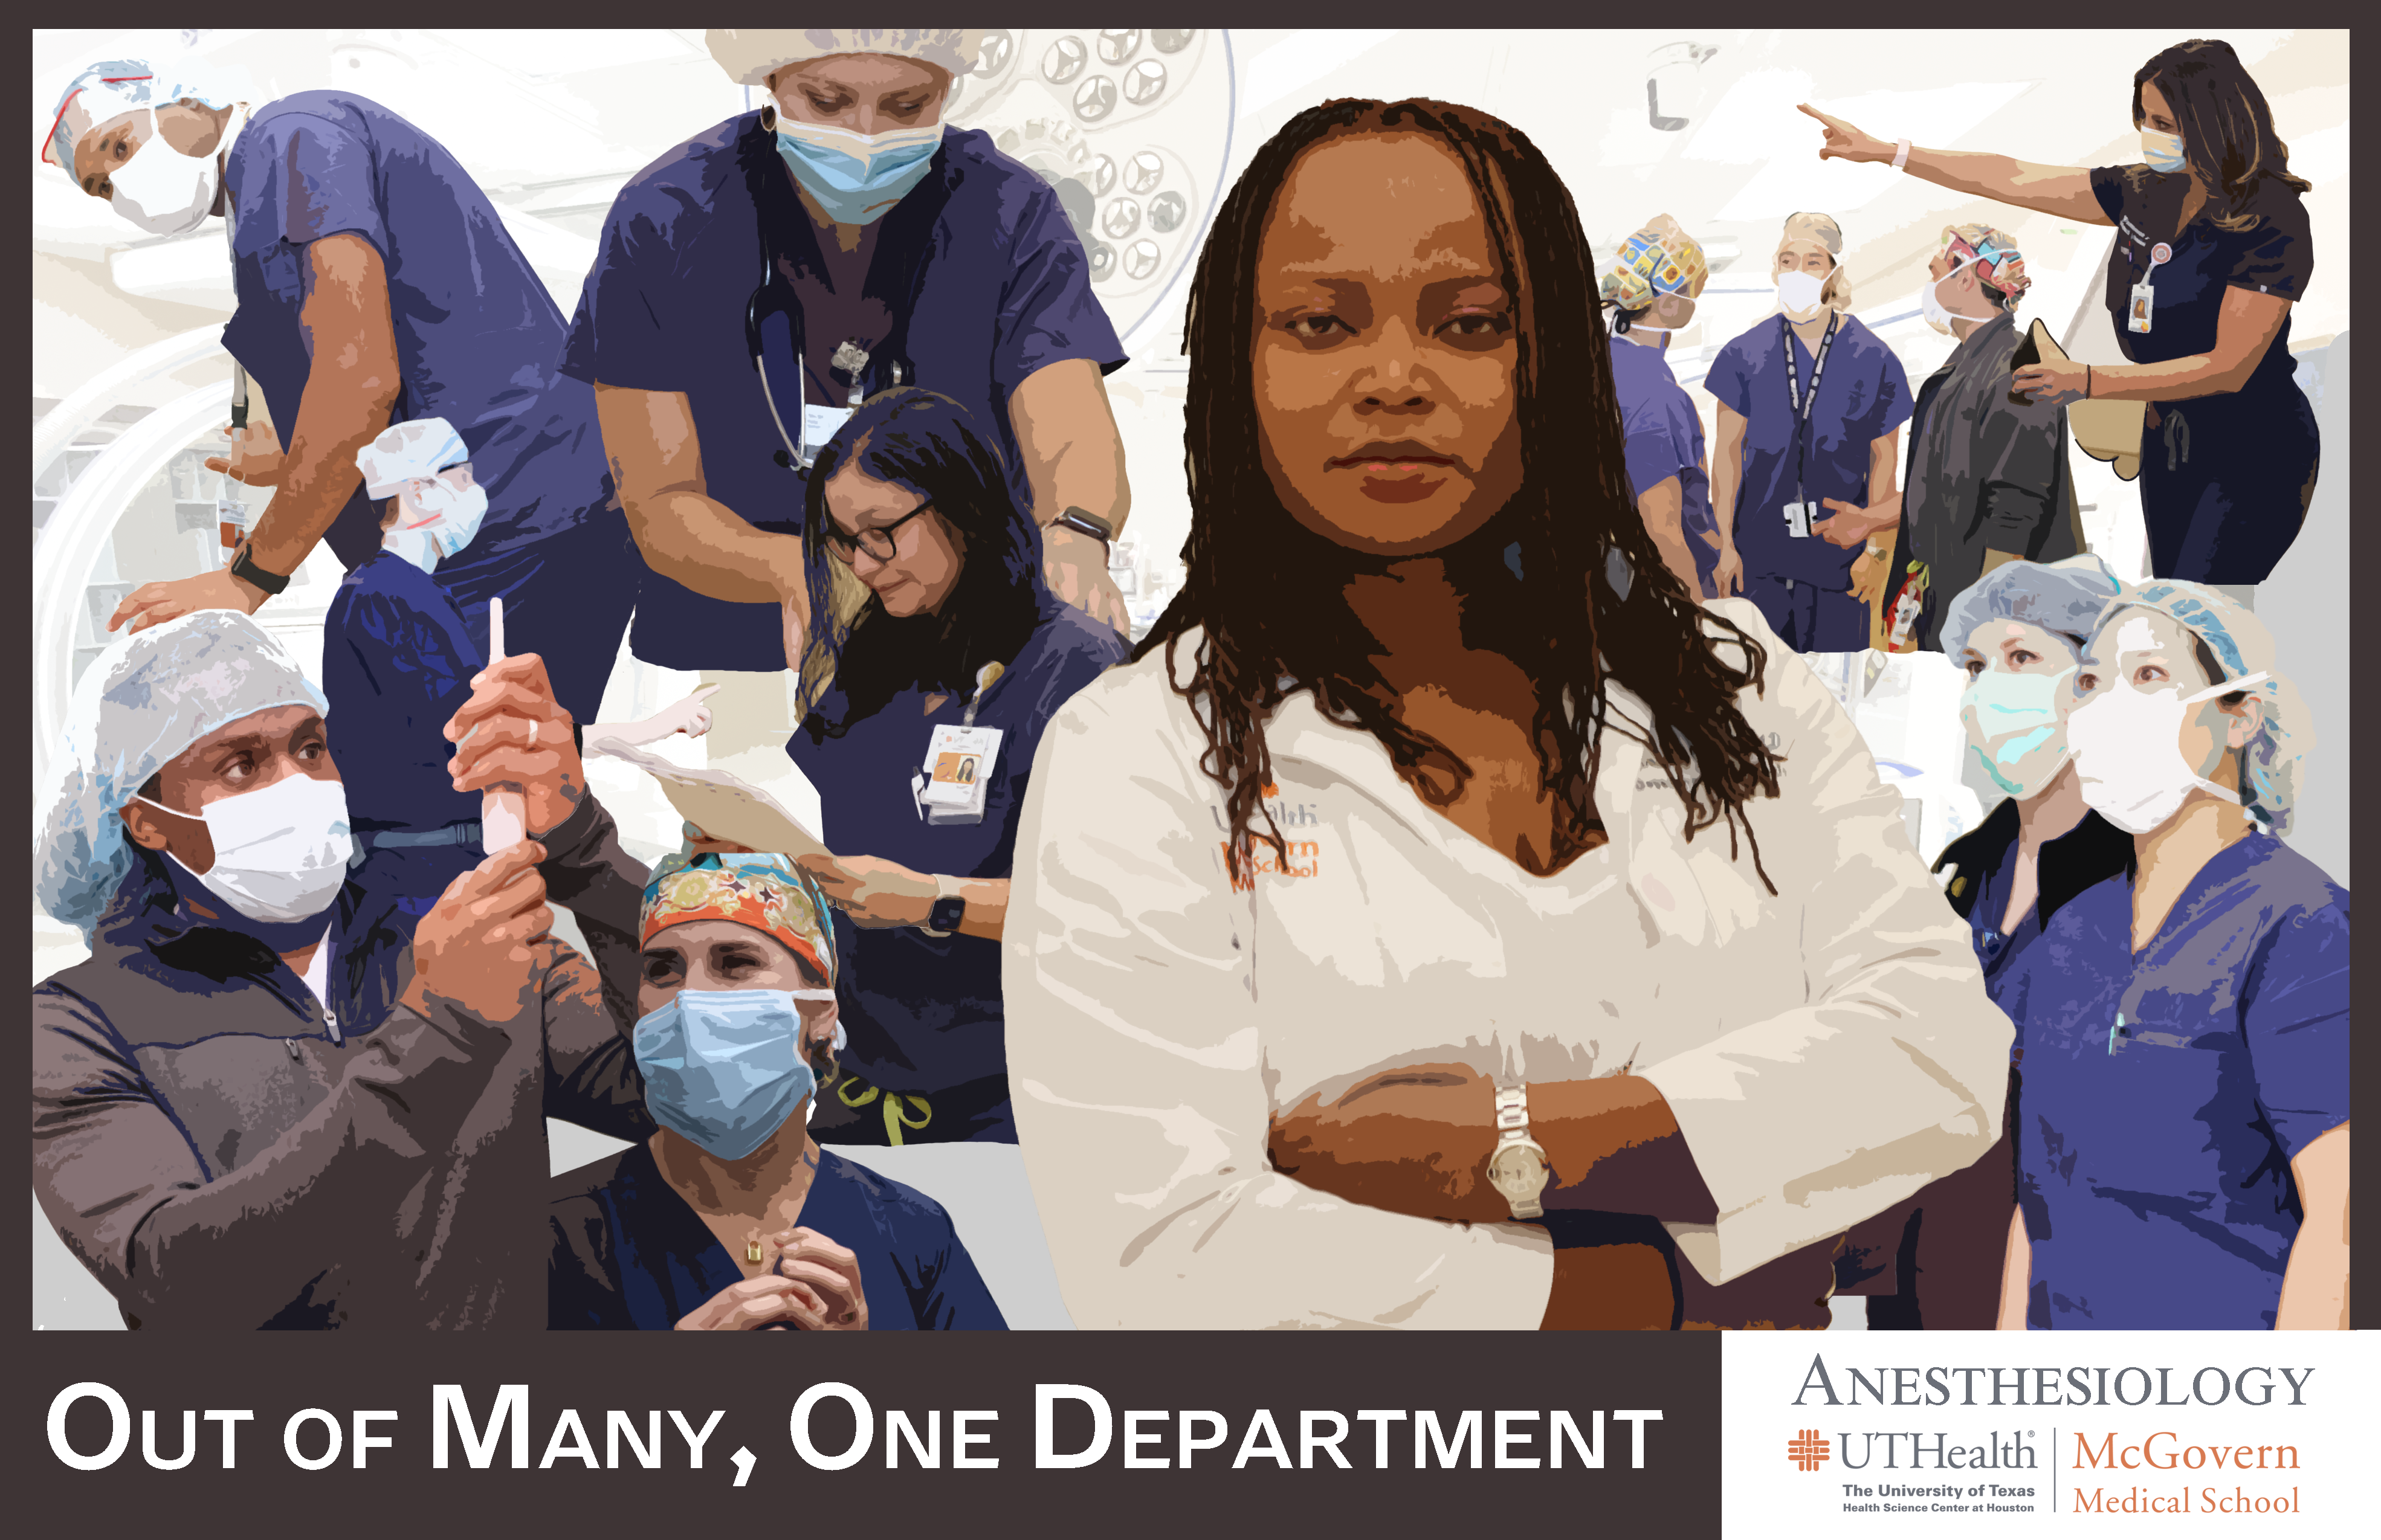 Department of Anesthesiology Diversity Graphic